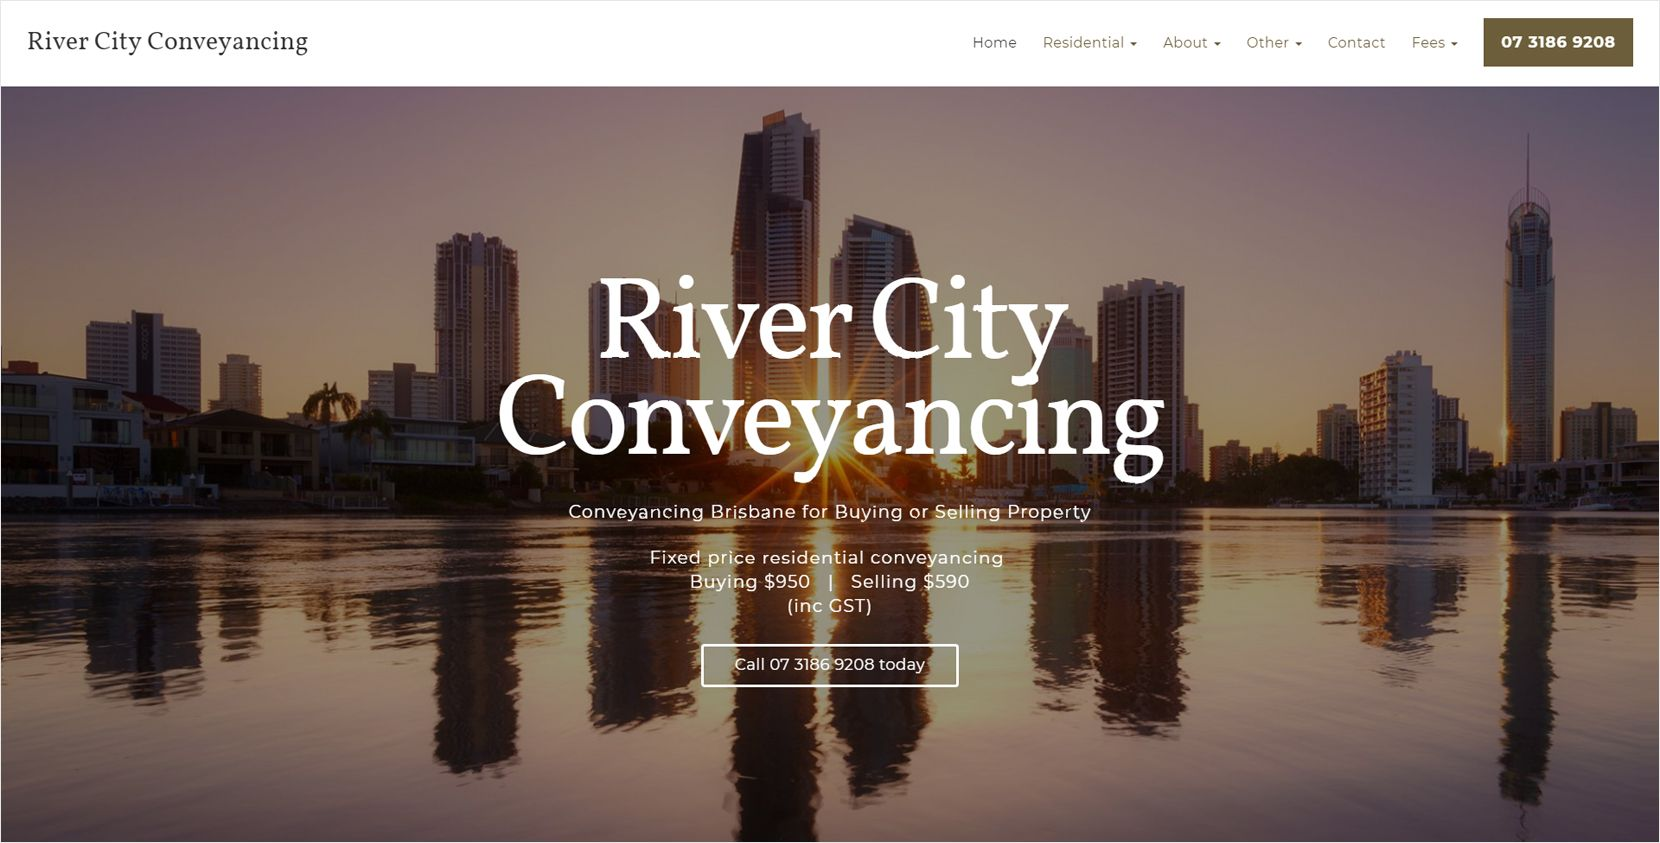 River City Conveyancing Website